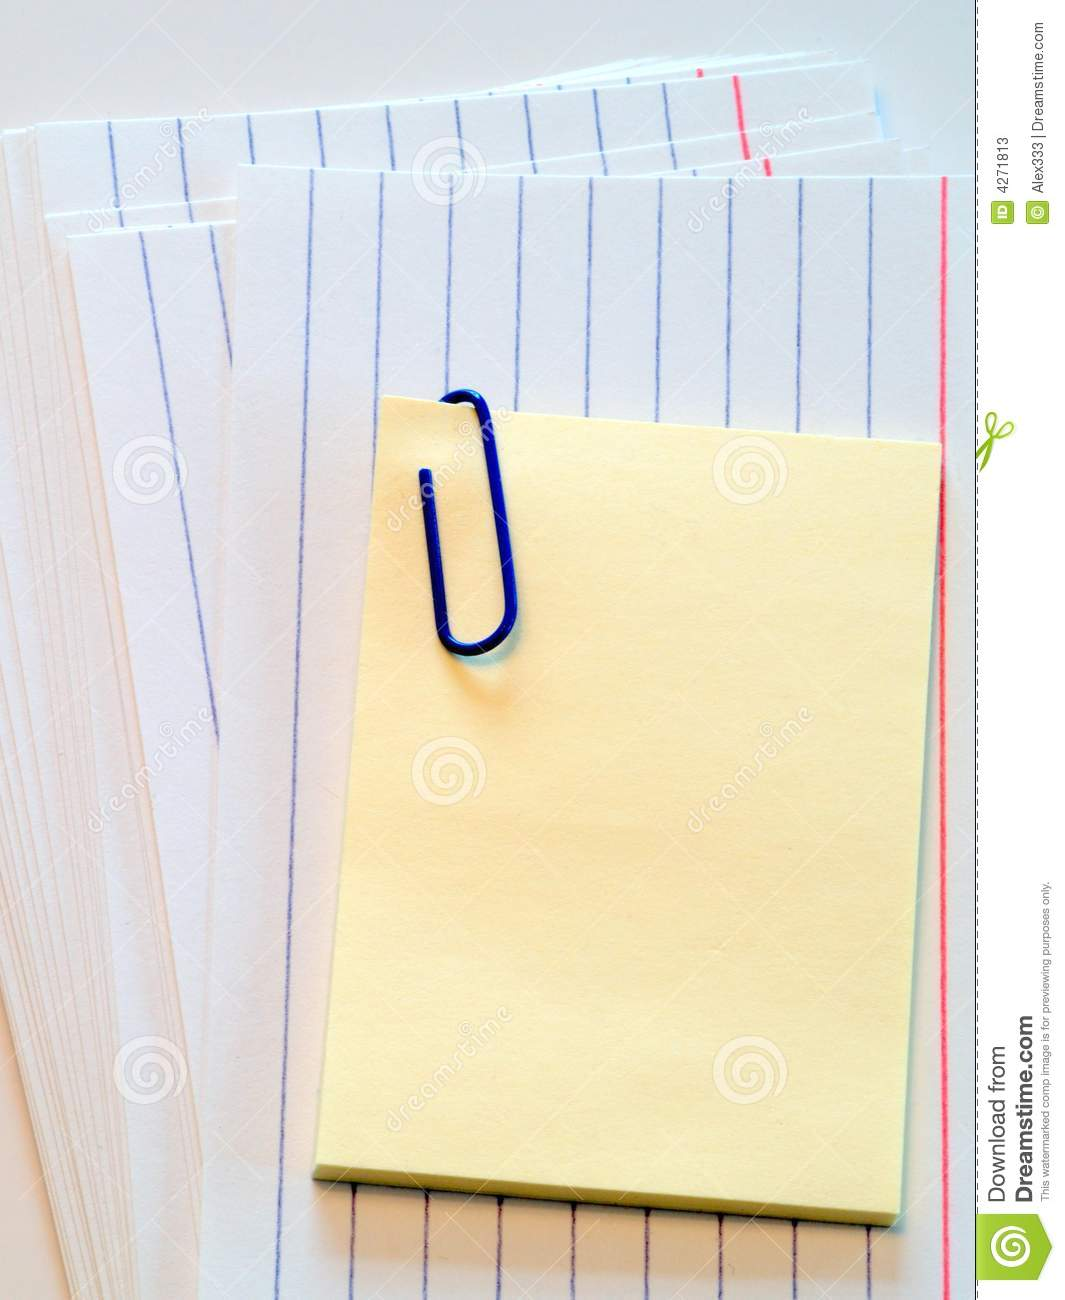 post it note on cue cards stock image image of reminder 4271813